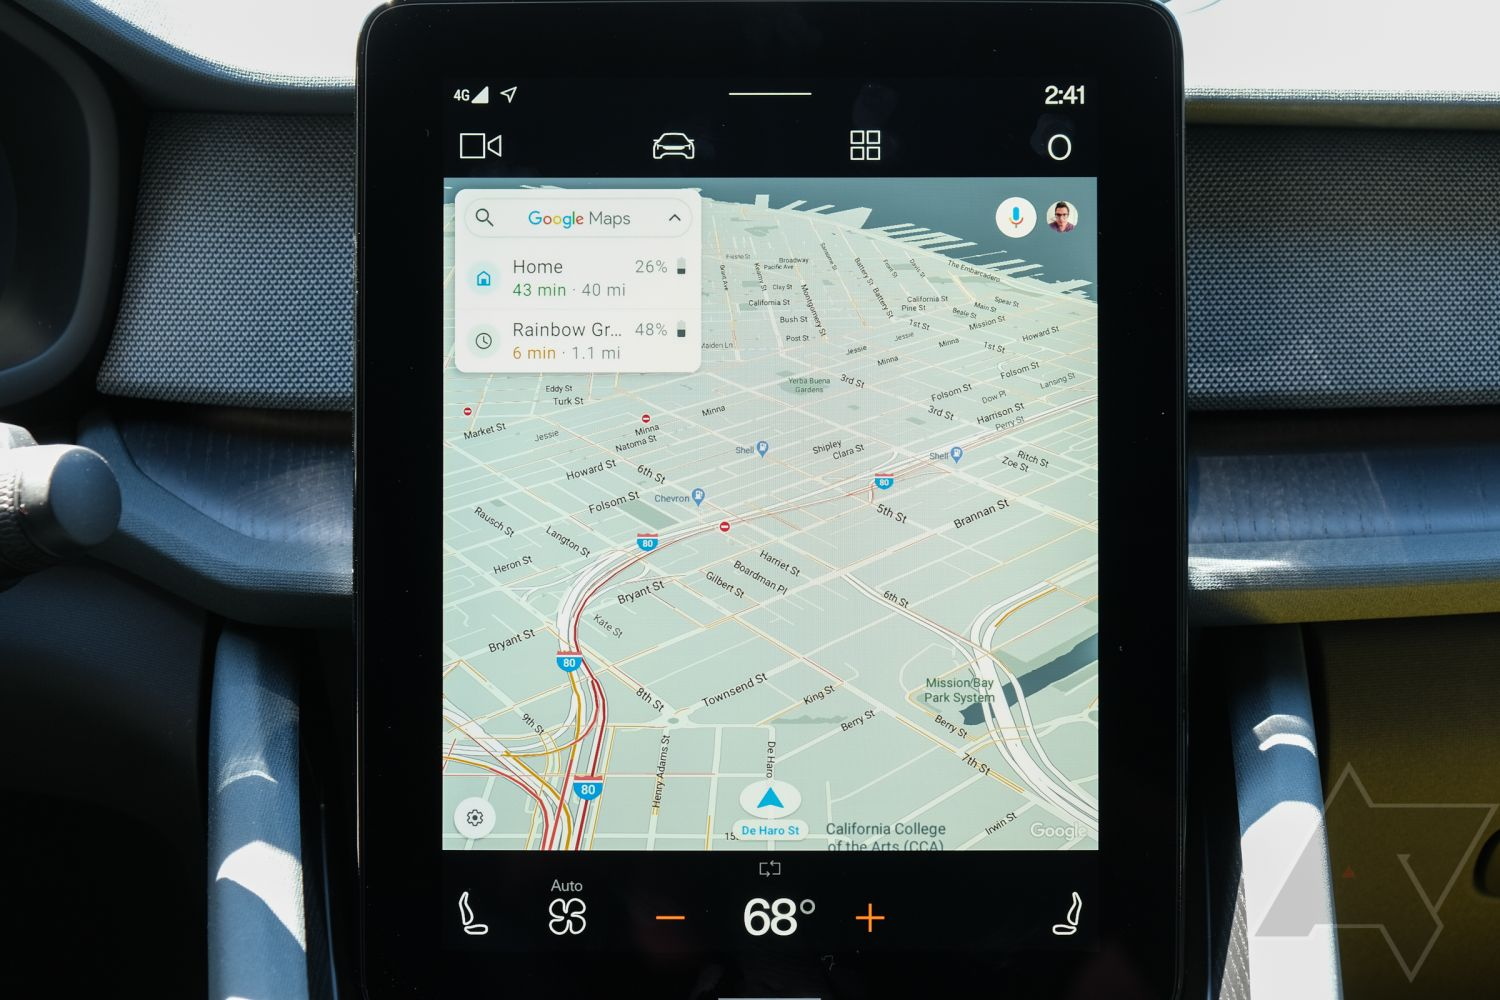 Show android auto app